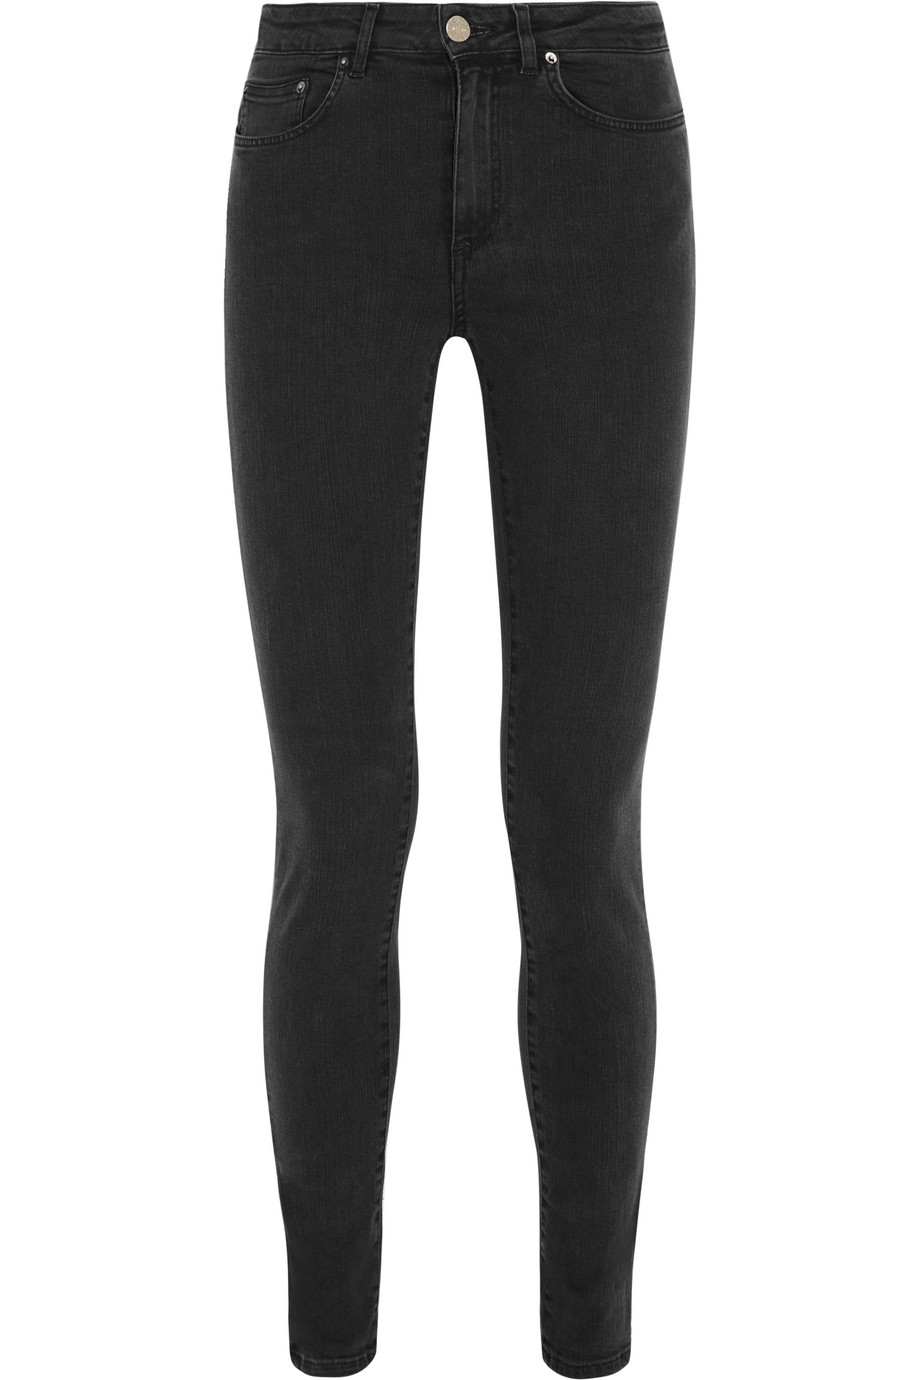 Acne Studios Pin High-Rise Skinny Jeans, Black, Women's, Size: 24